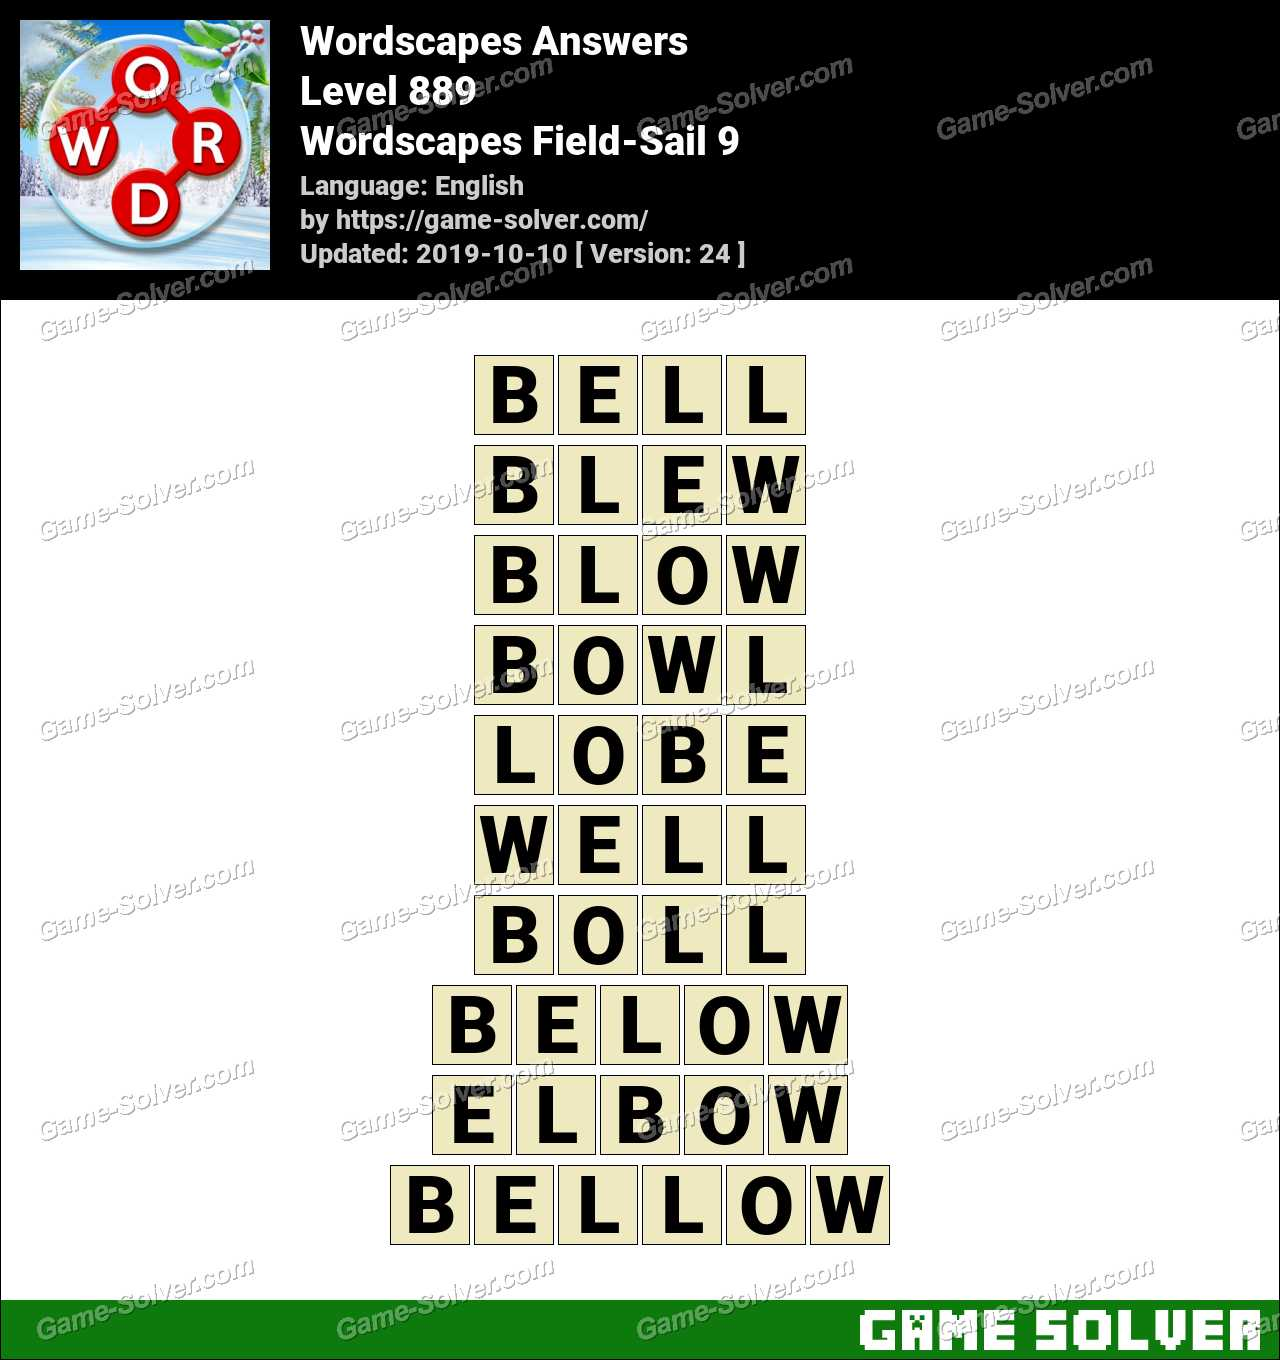 Wordscapes Field-Sail 9 Answers